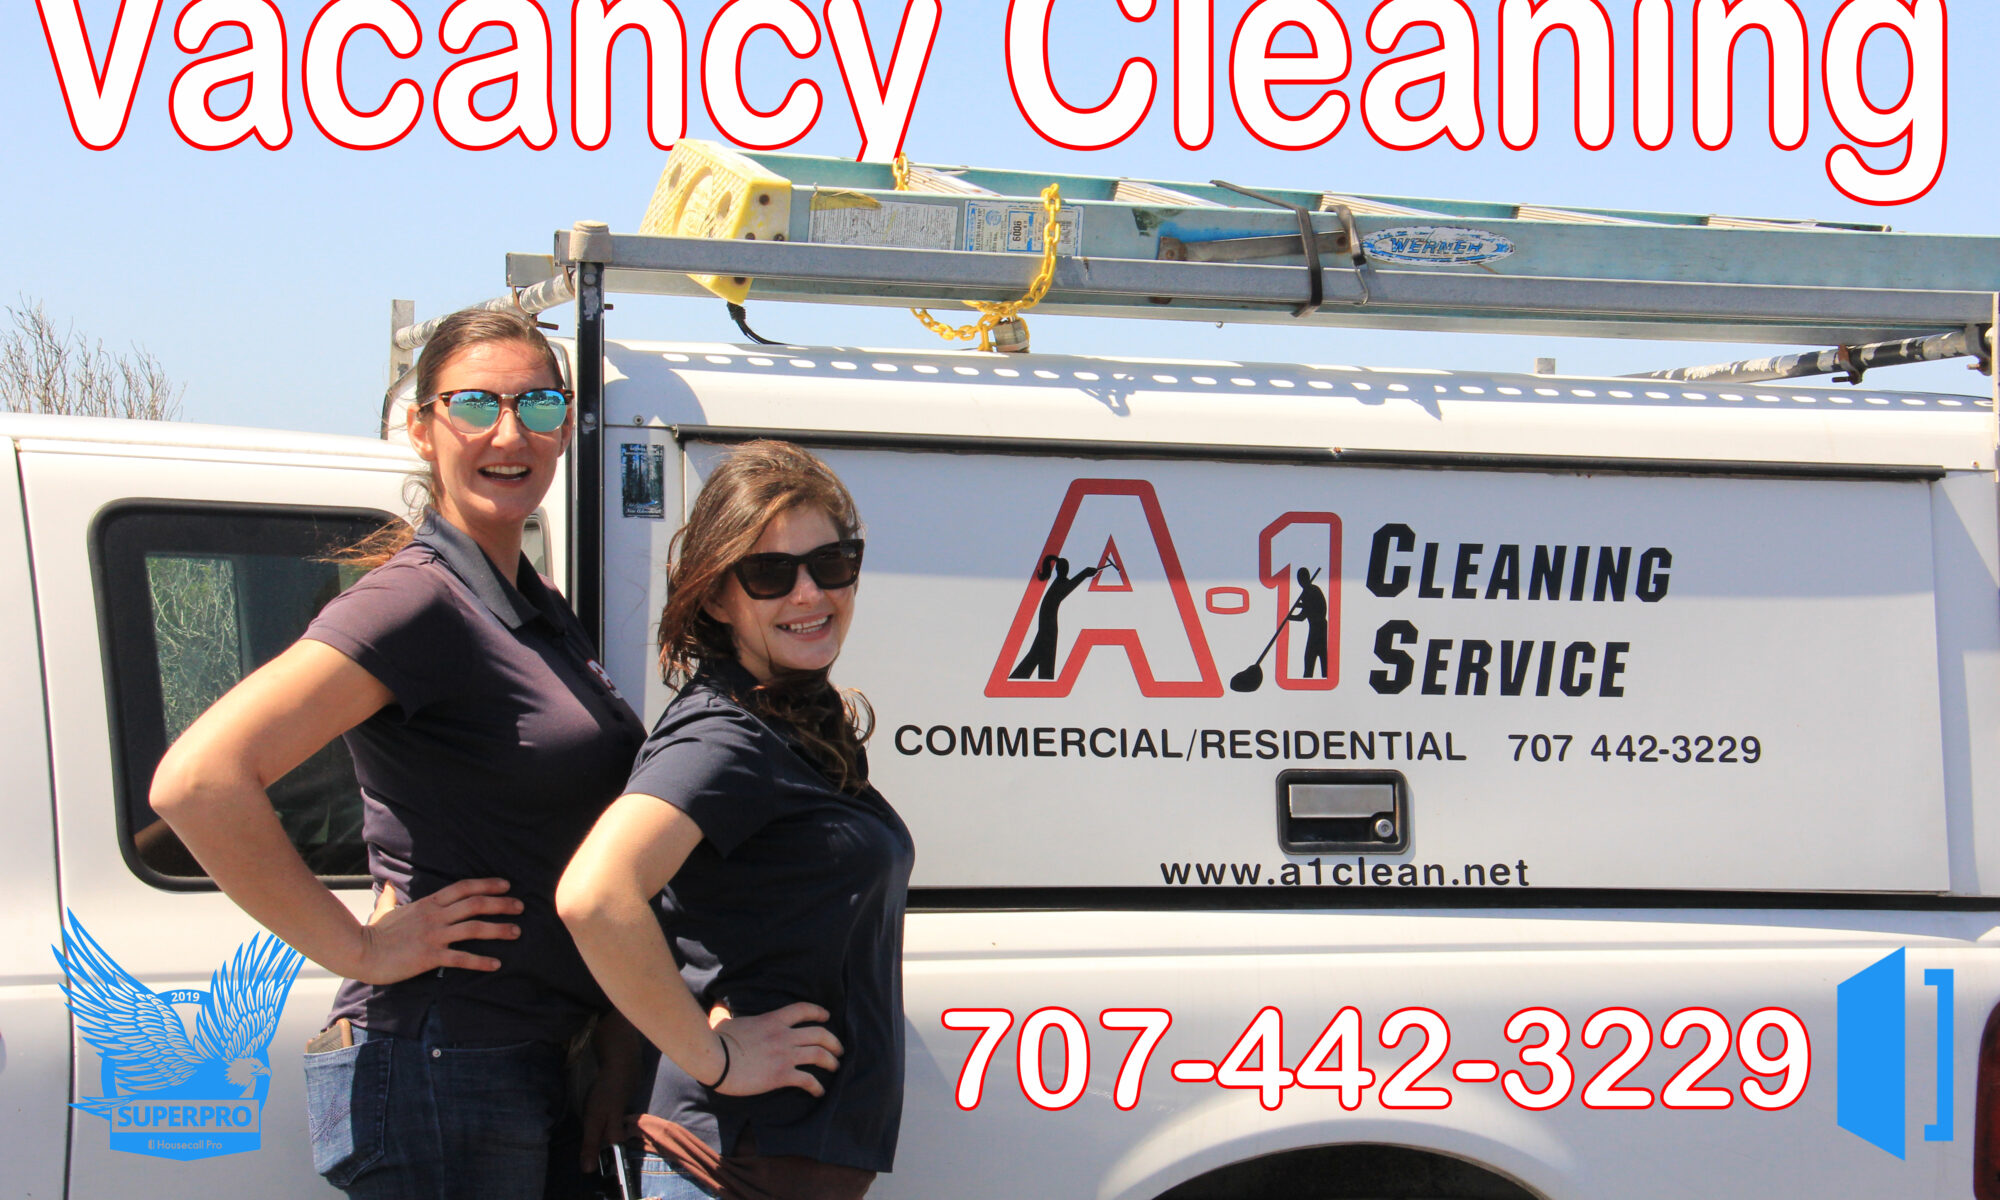 A-1 Cleaning Vacancy Cleaning Ladies By Truck